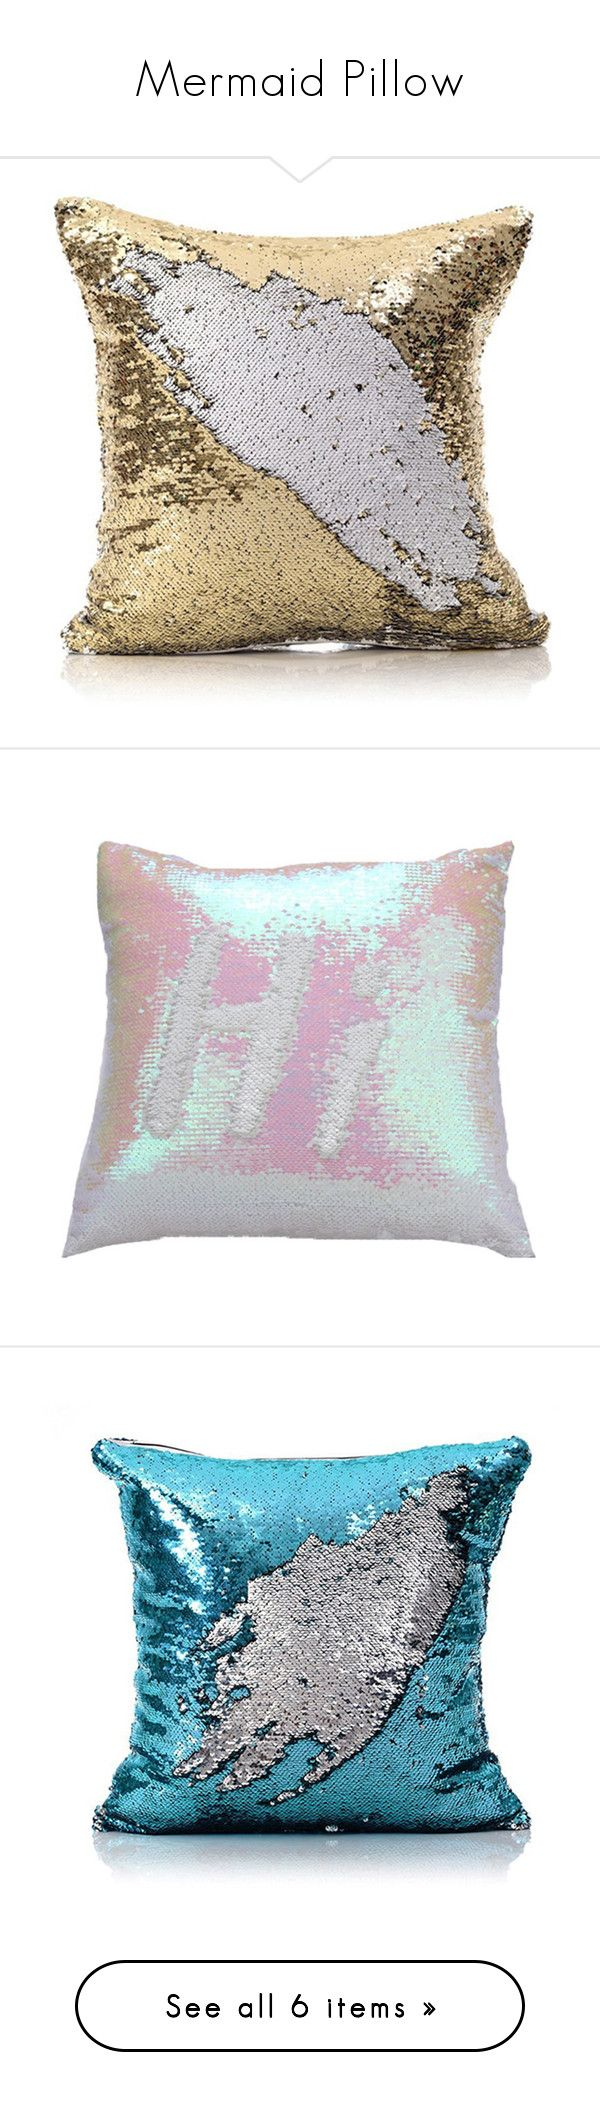 Horse shaped pillows for children -  Mermaid Pillow By Homelava Liked On Polyvore Featuring Array0x197d8c40 Home Home